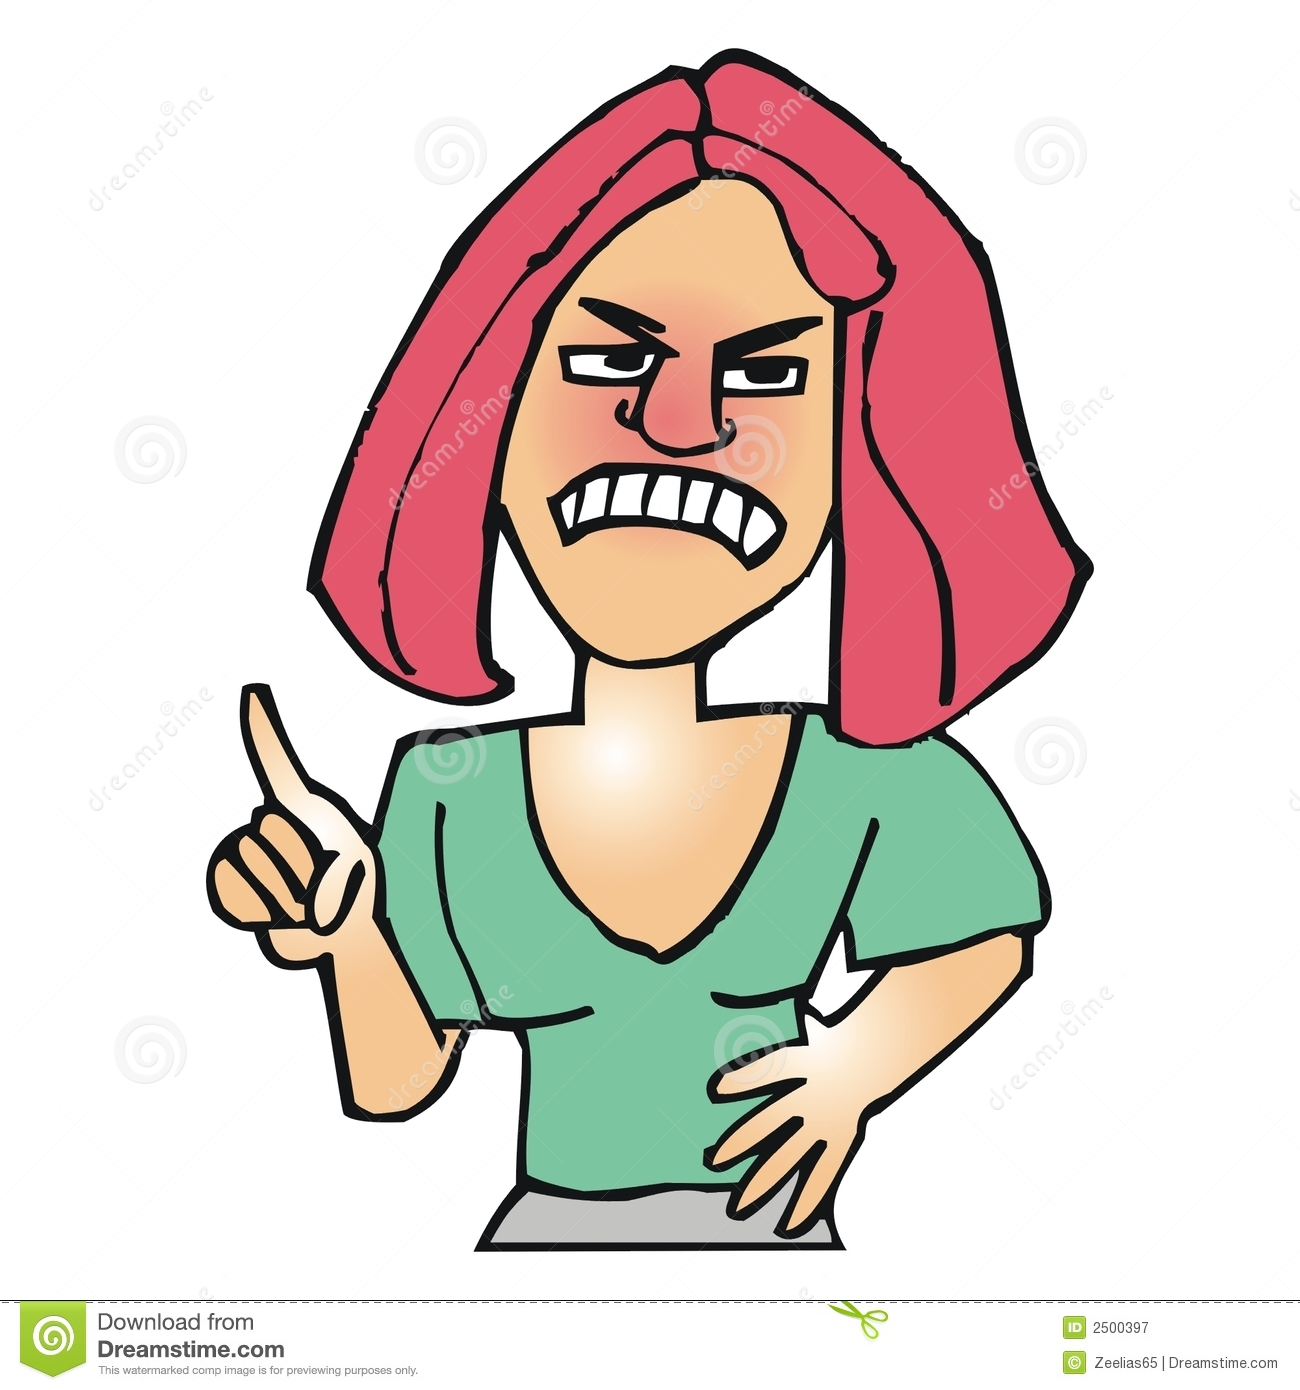 Caricature clipart angry baby Mom mom Clipart Mad